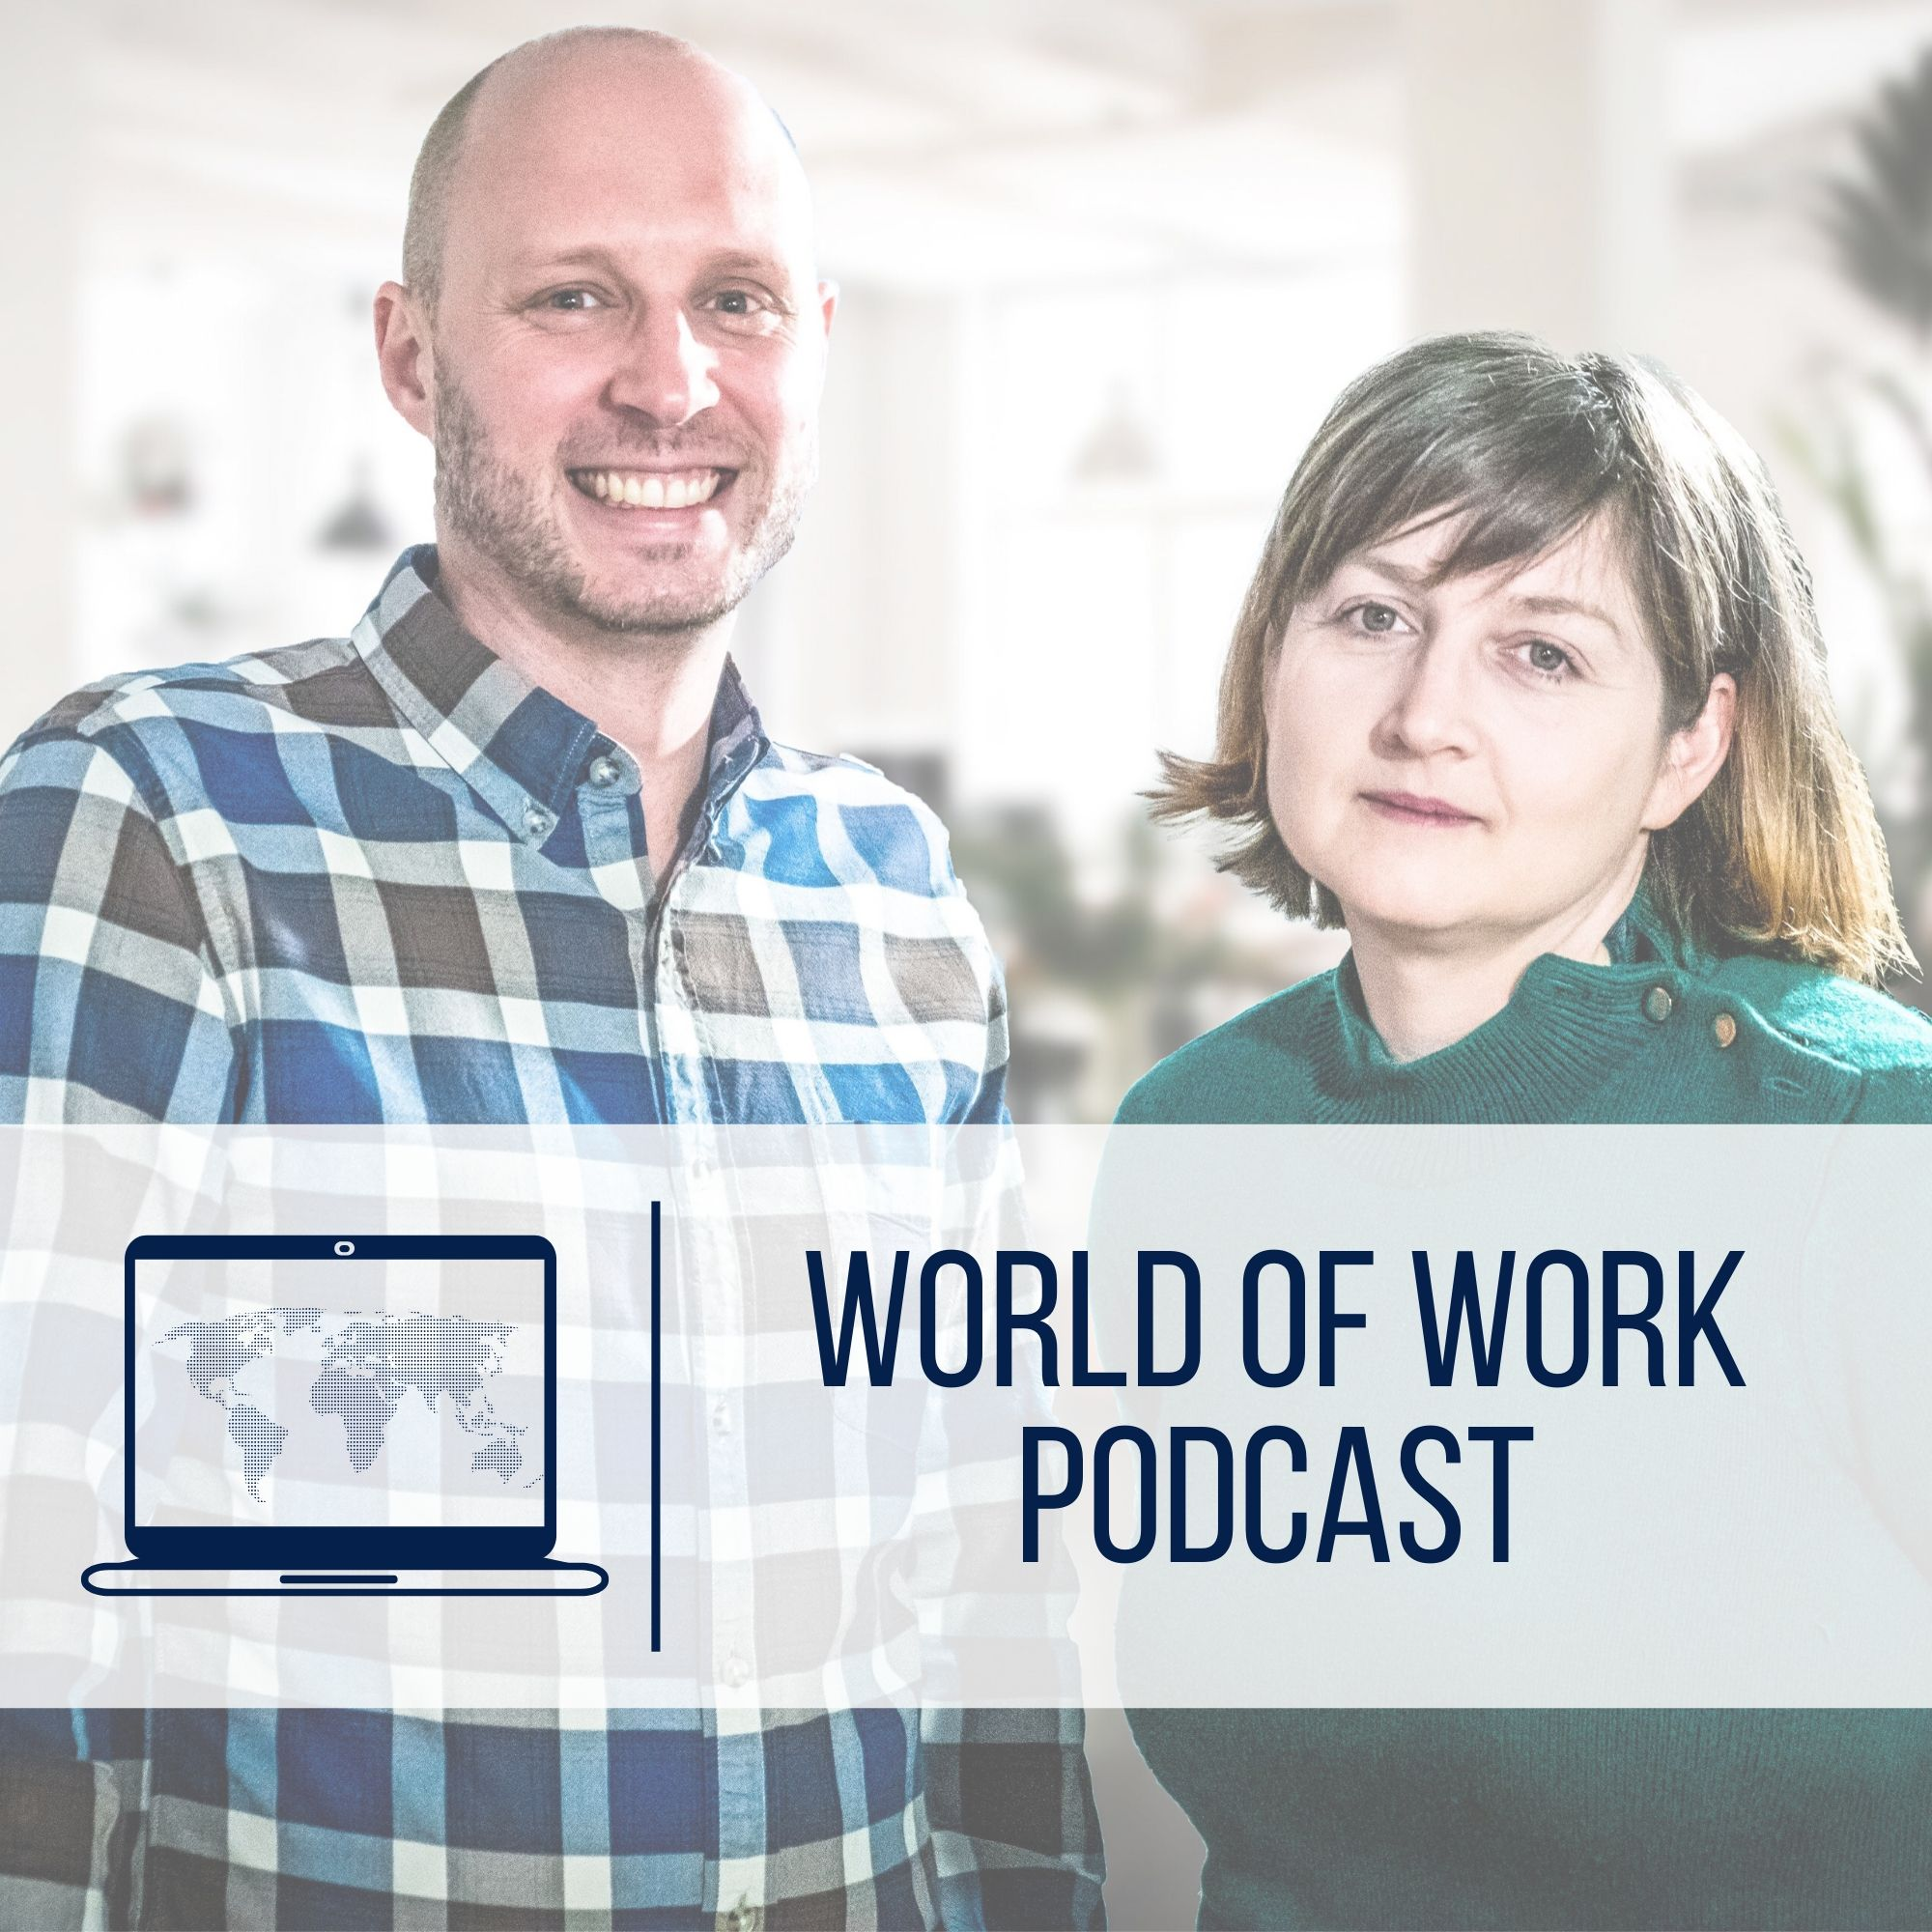 The World of Work Podcast show art